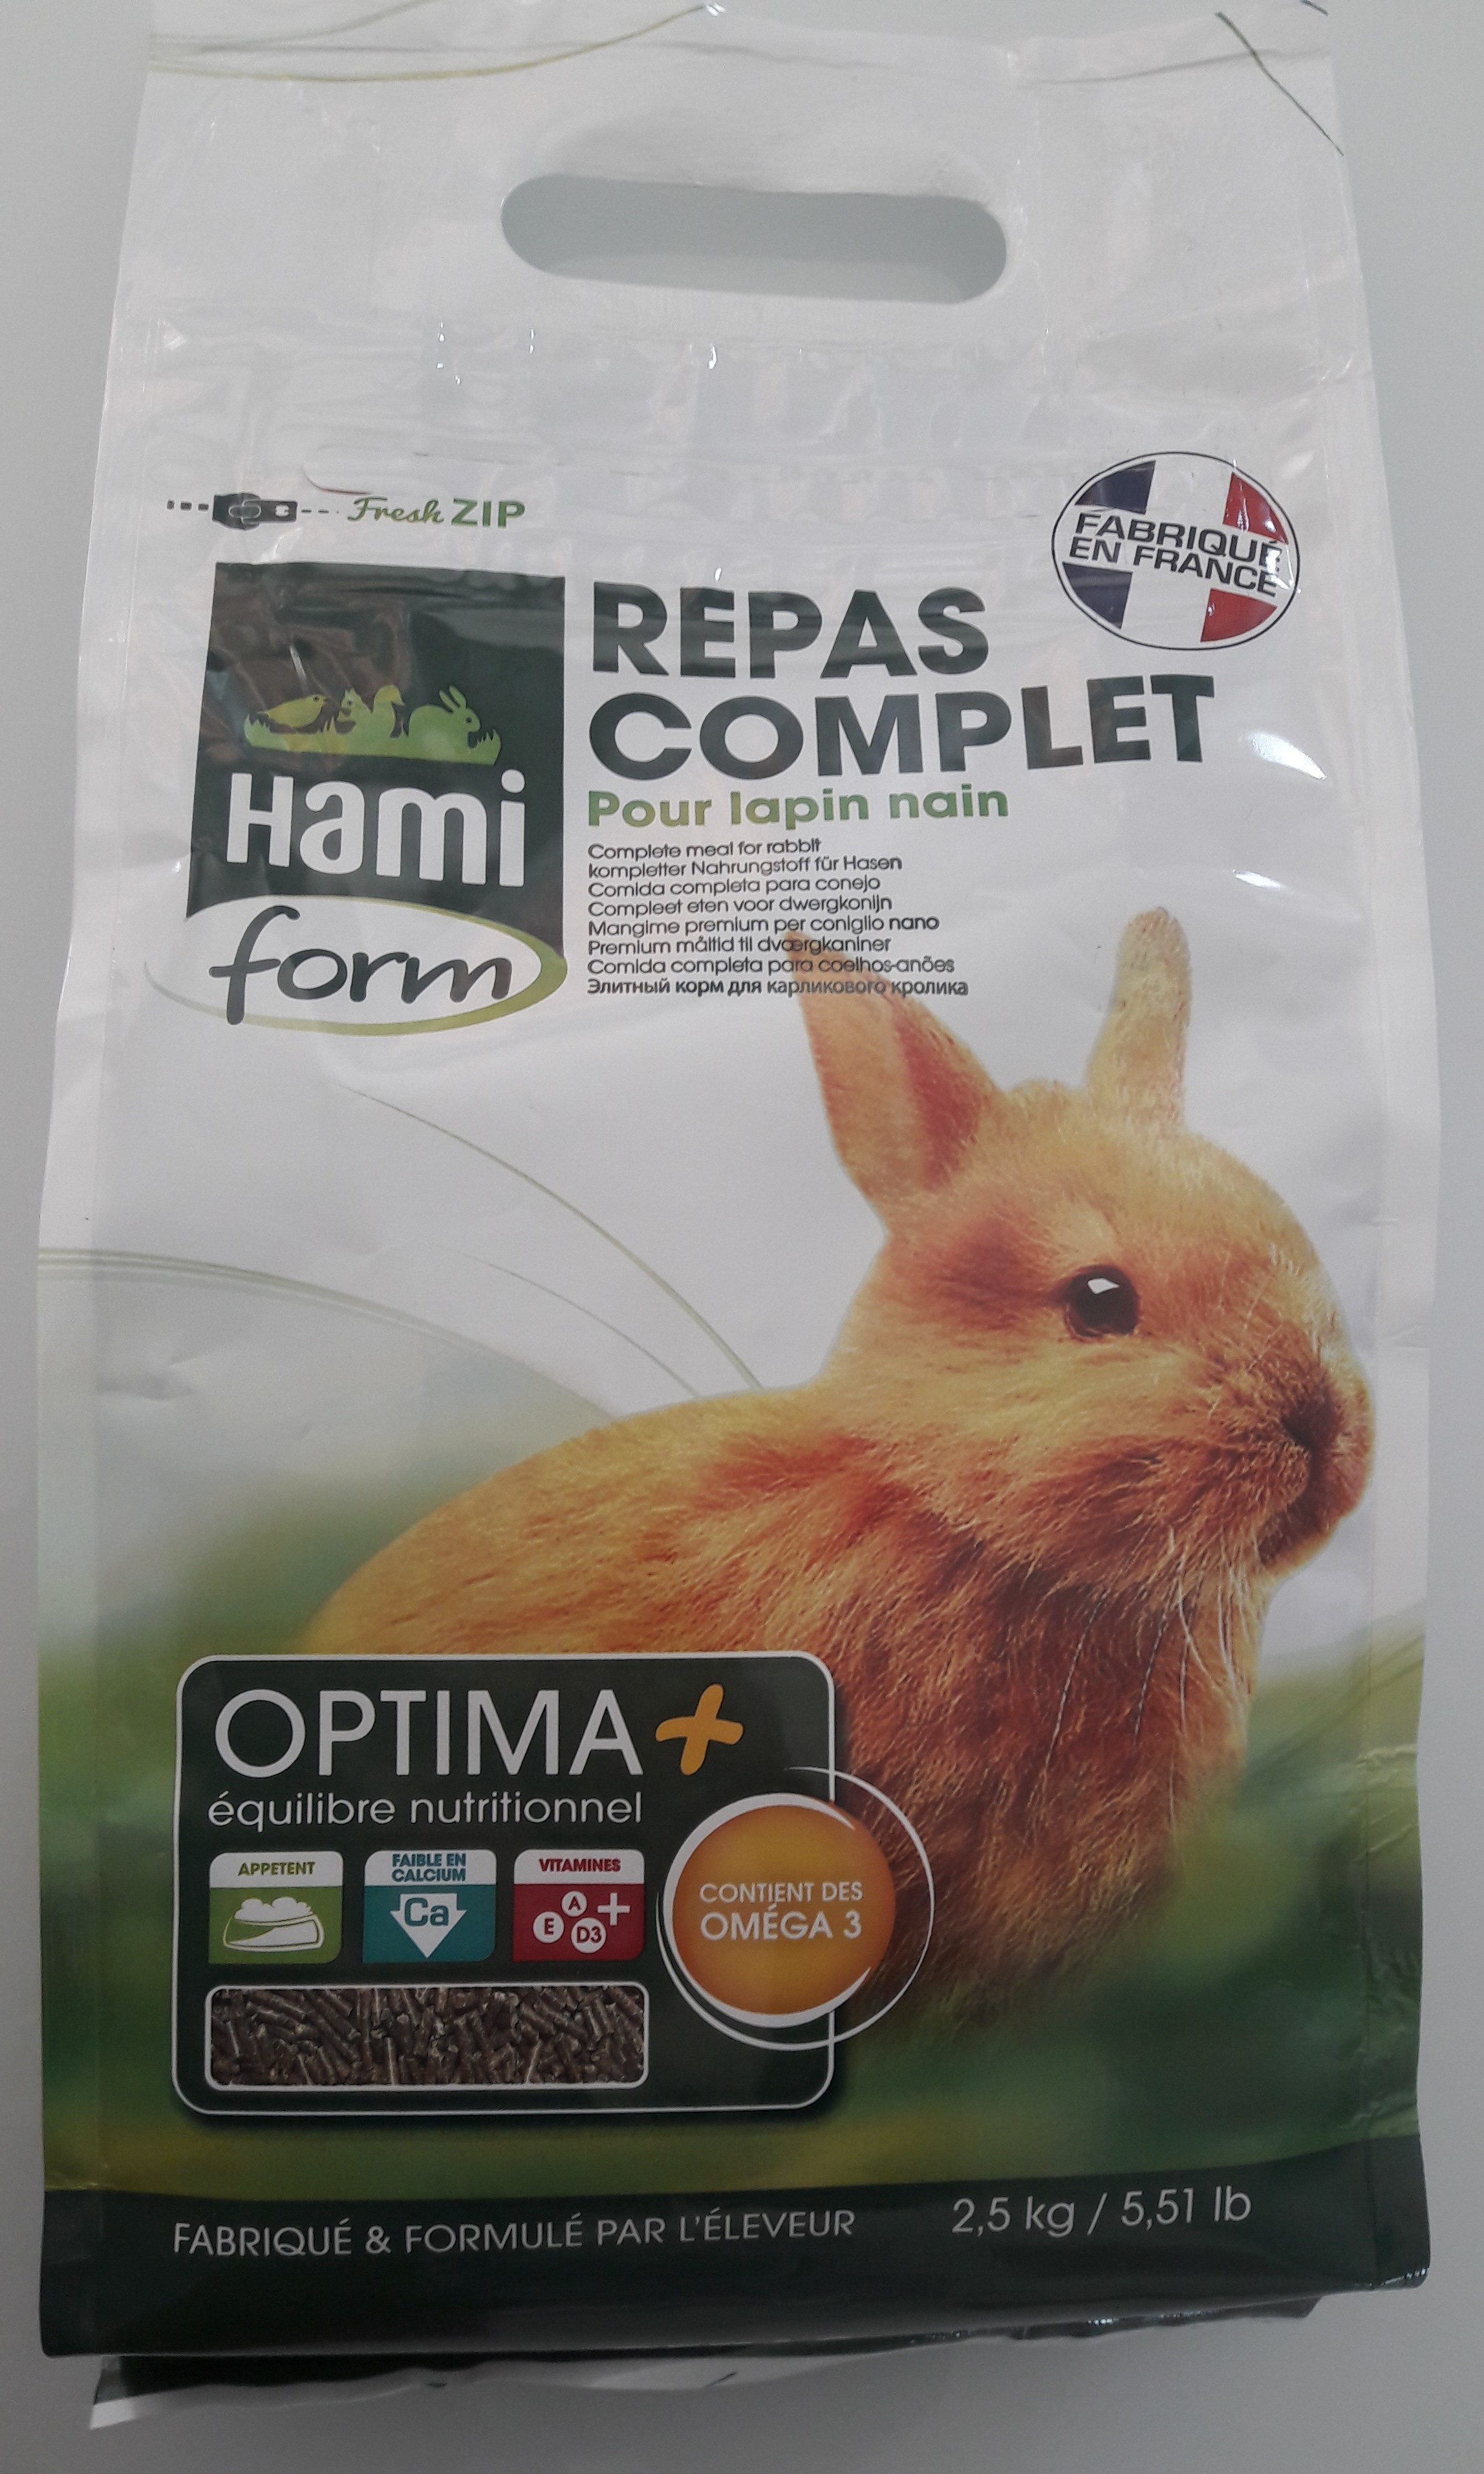 Repas Complet Optima+ - Product - fr